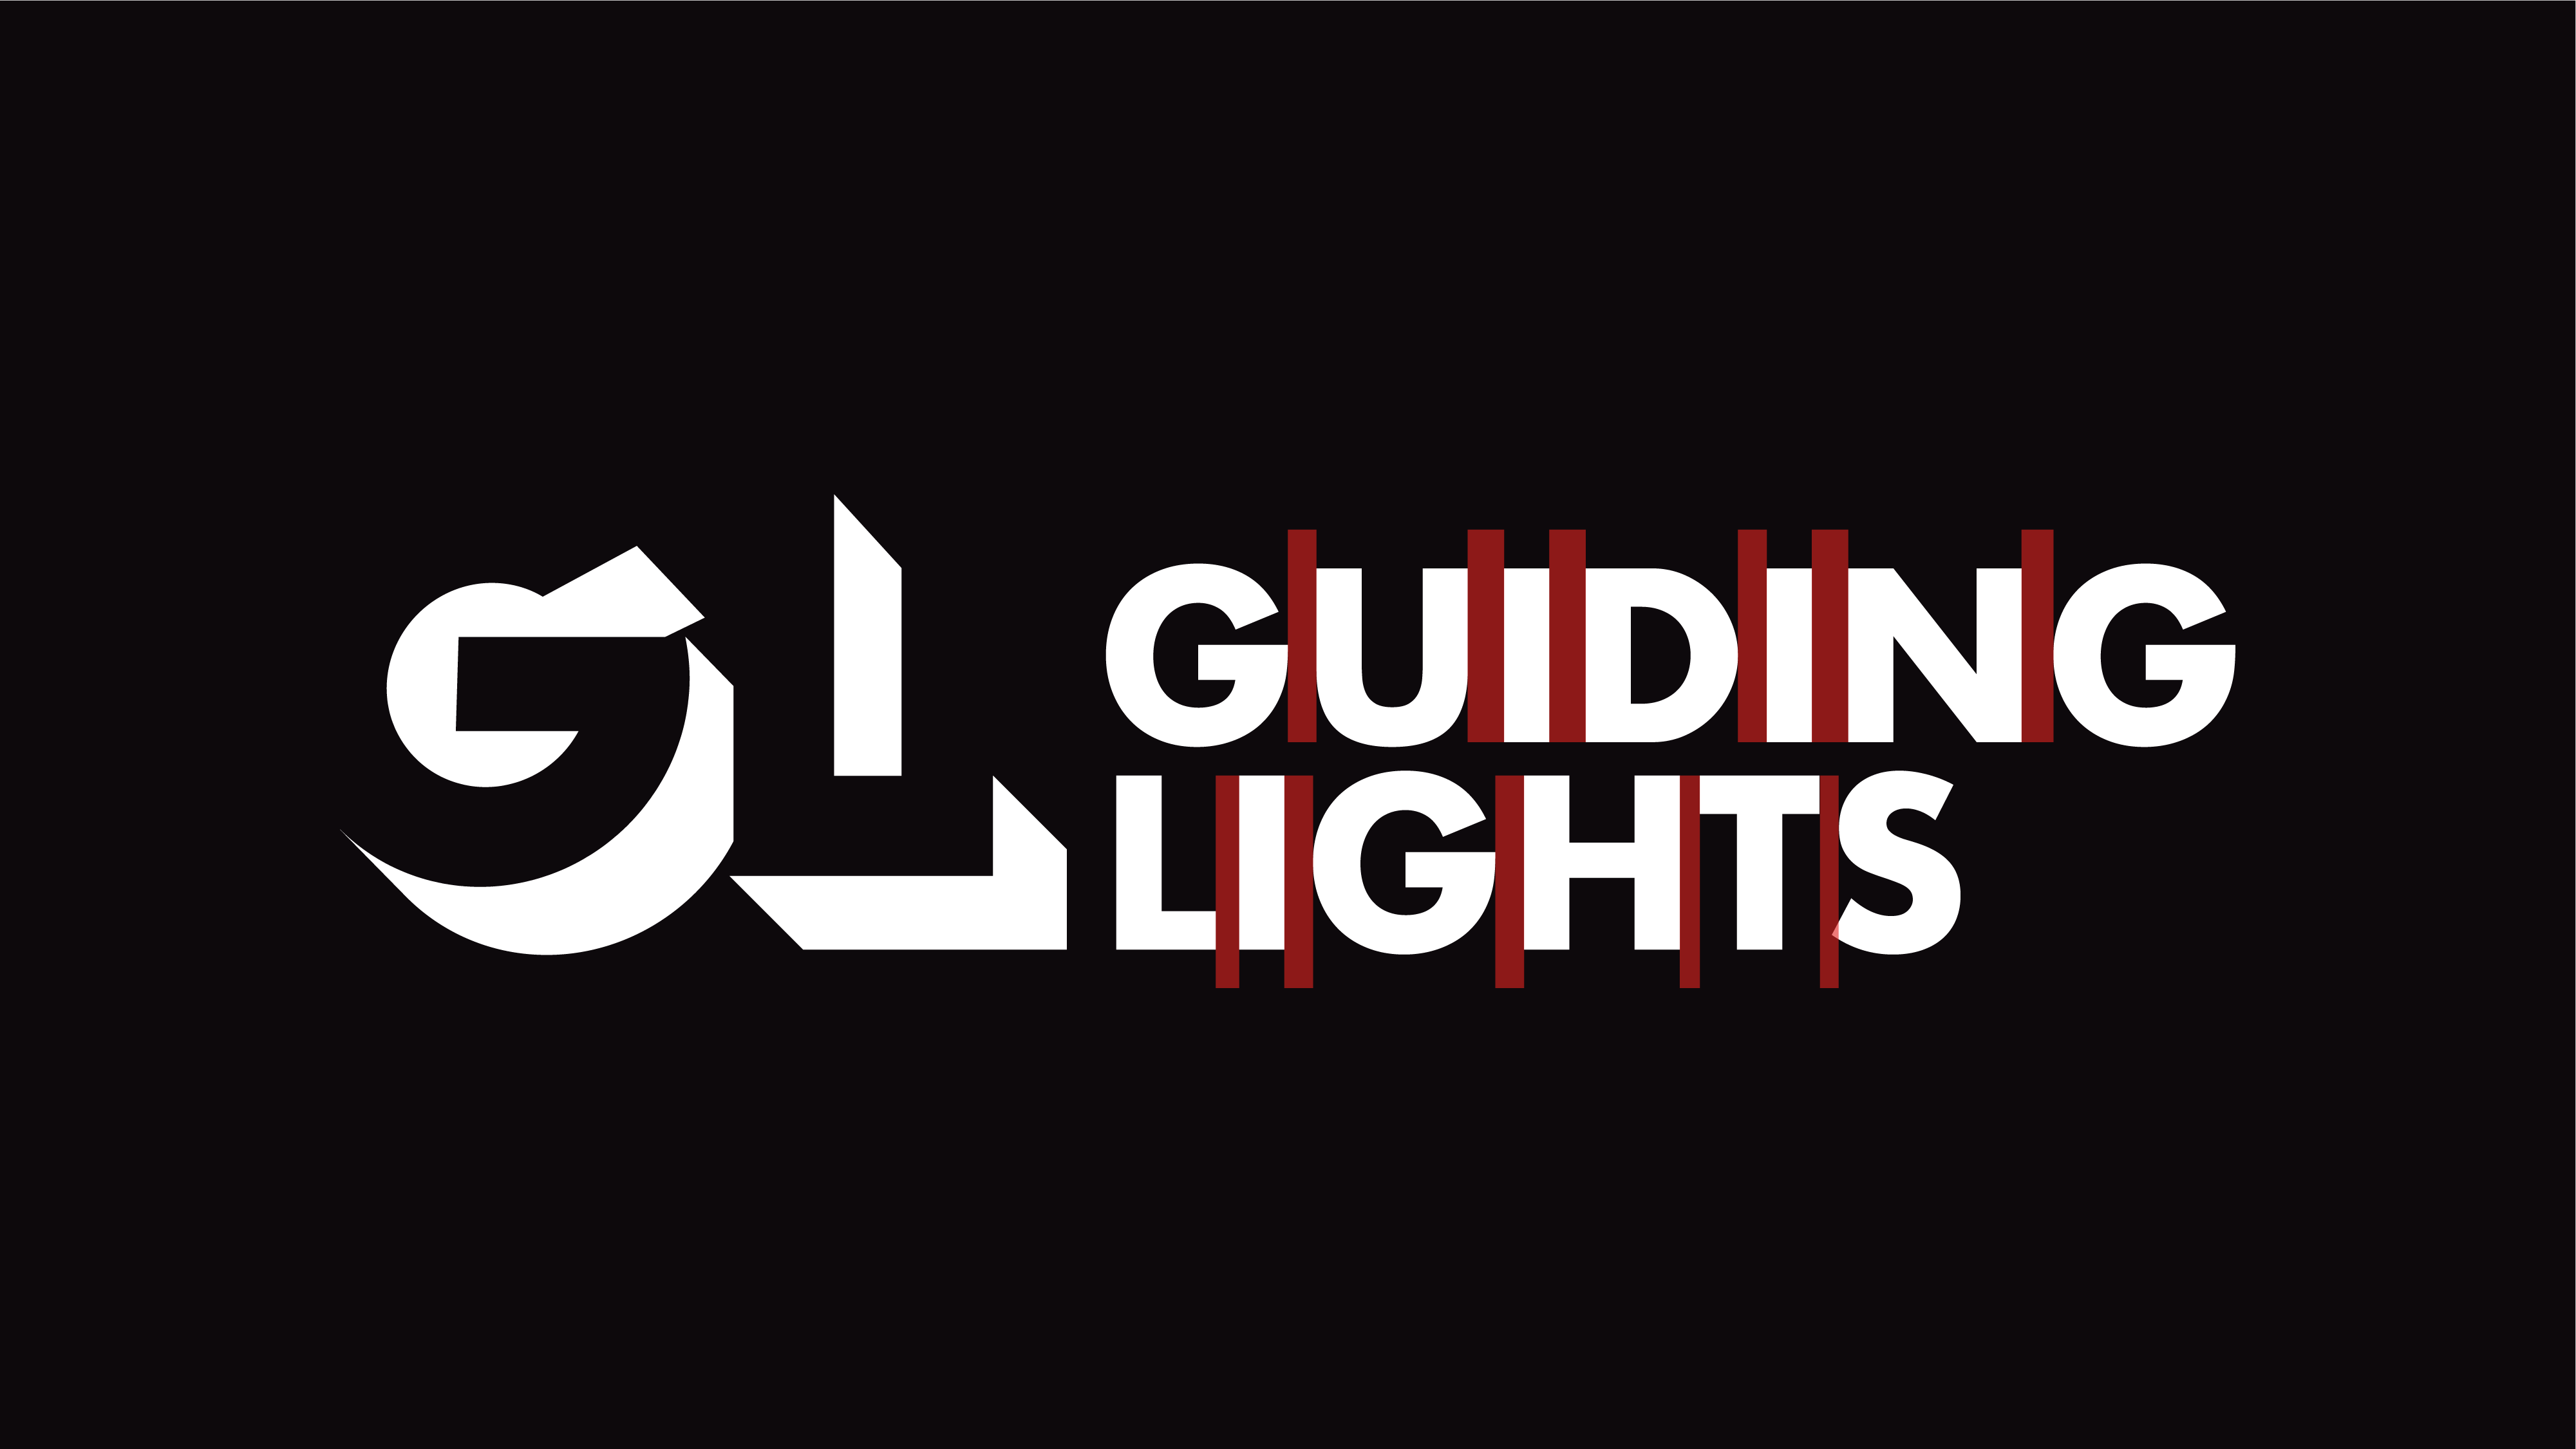 Guiding-Lights-refinement-02